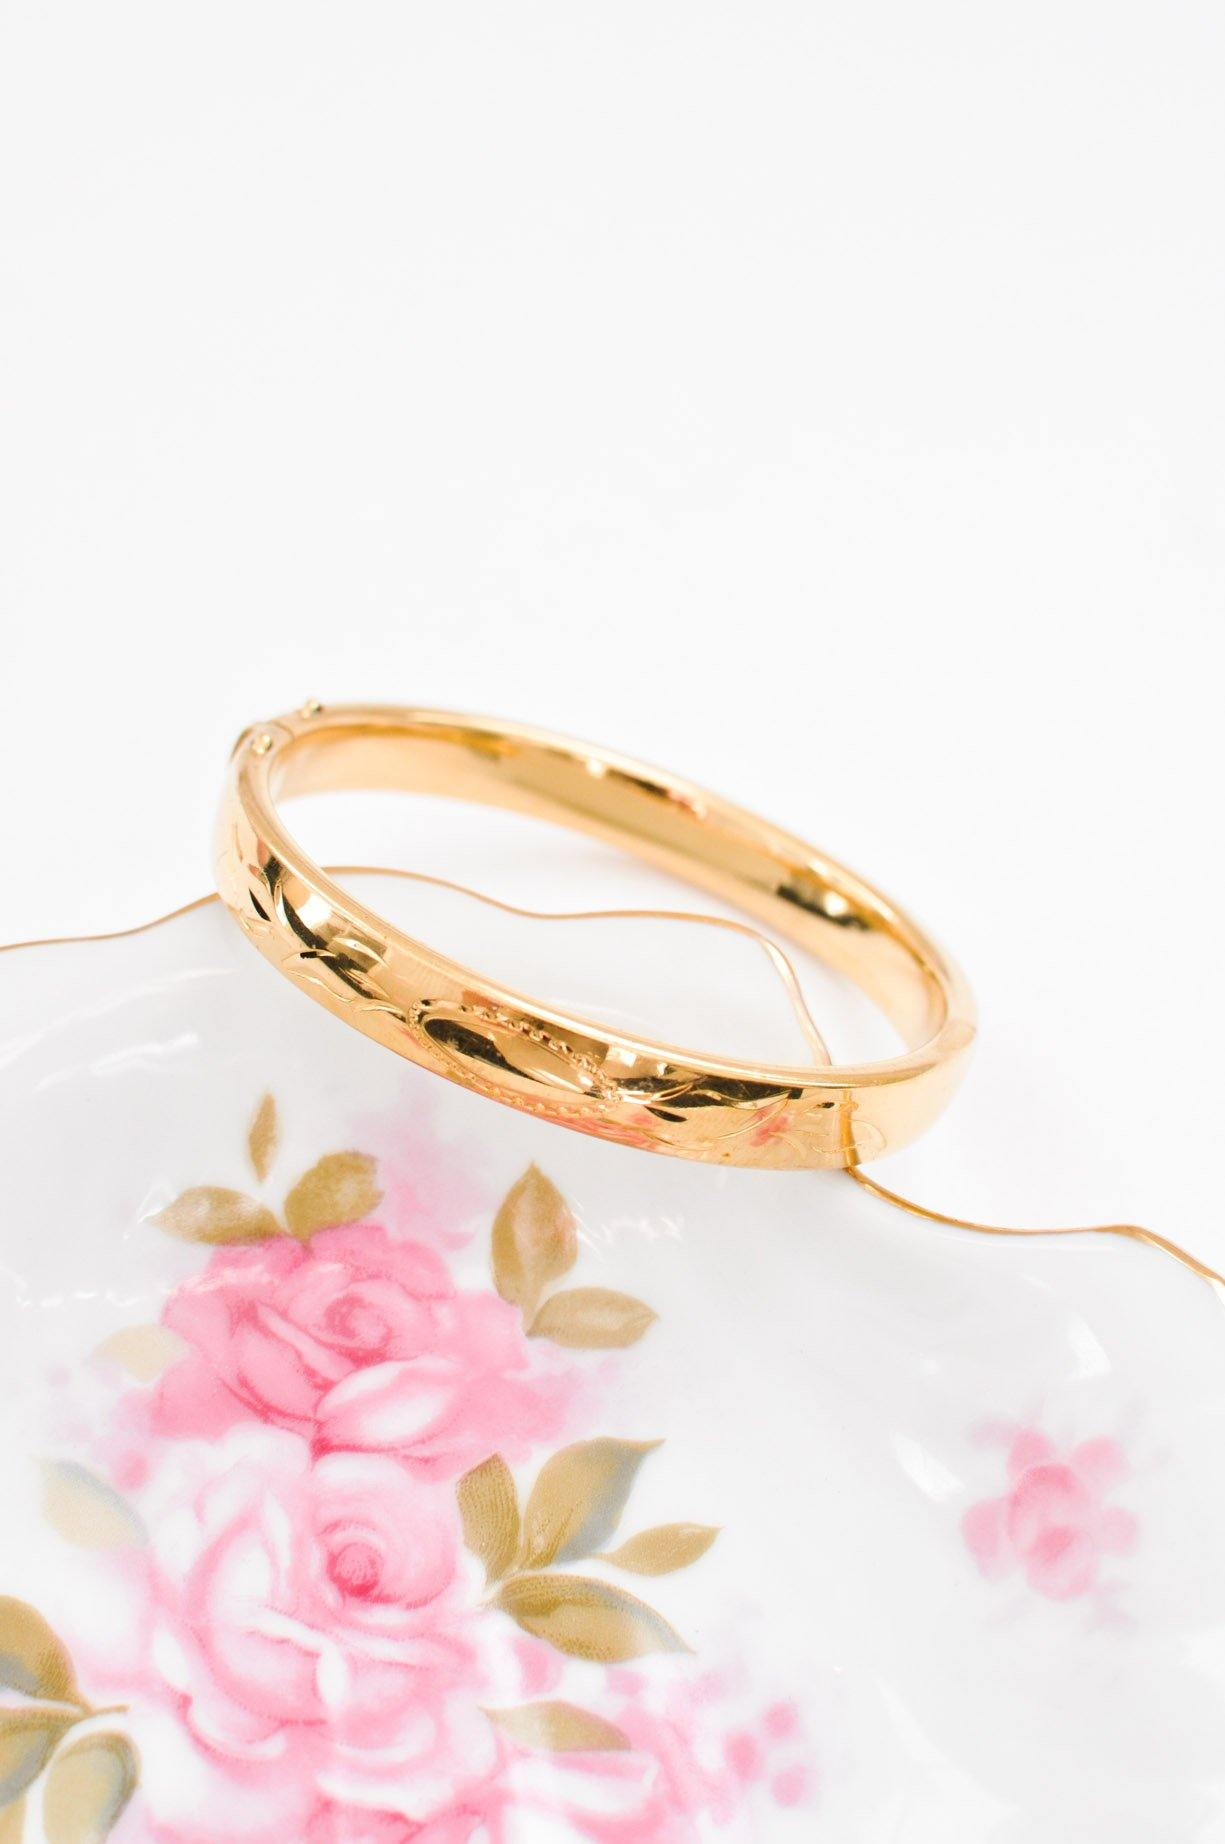 Etched Clip-in Bangle Bracelet